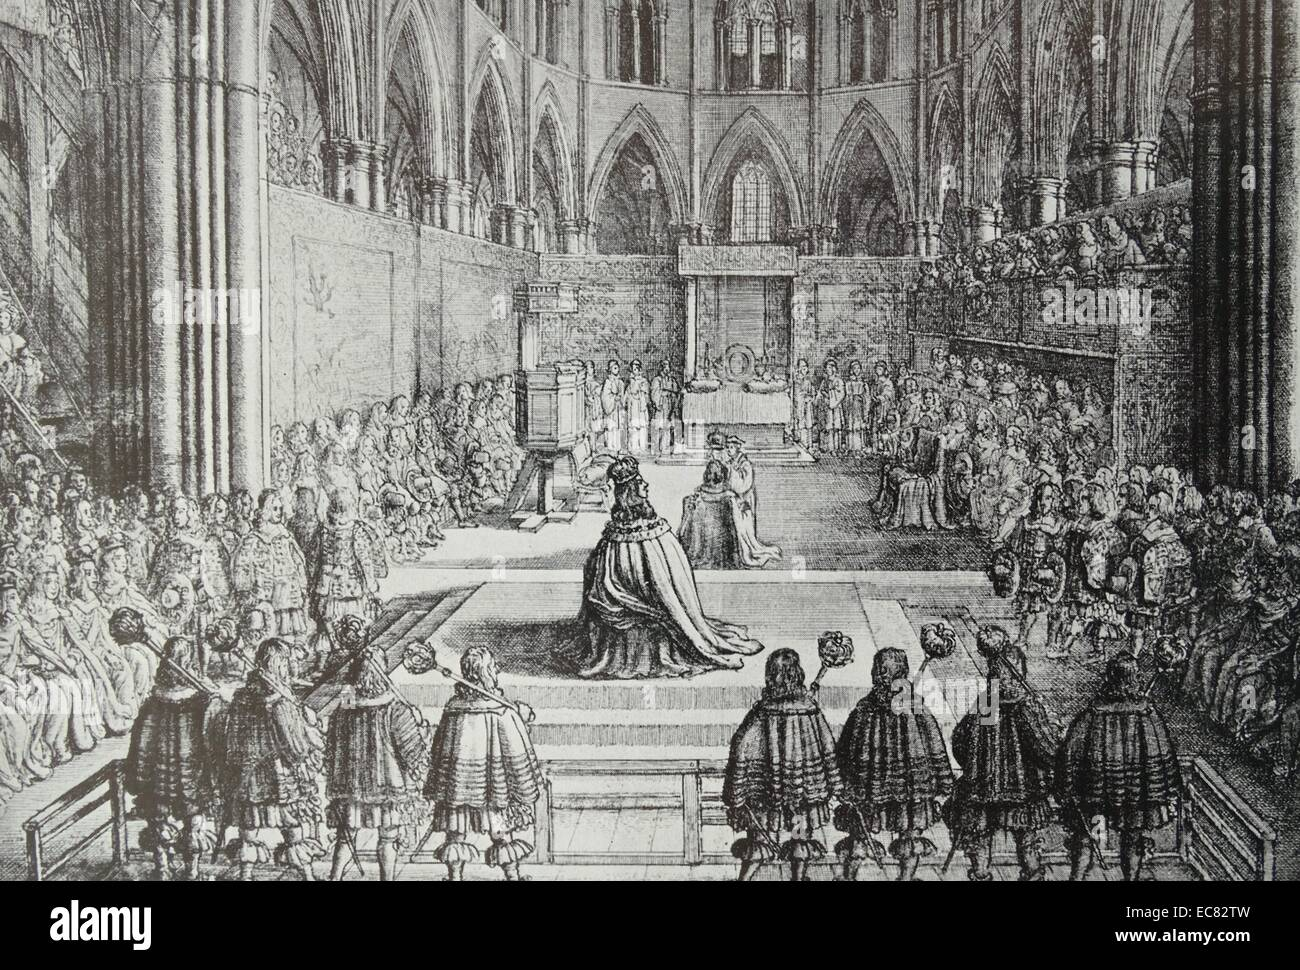 Engraving of the Coronation of King Charles II - Stock Image